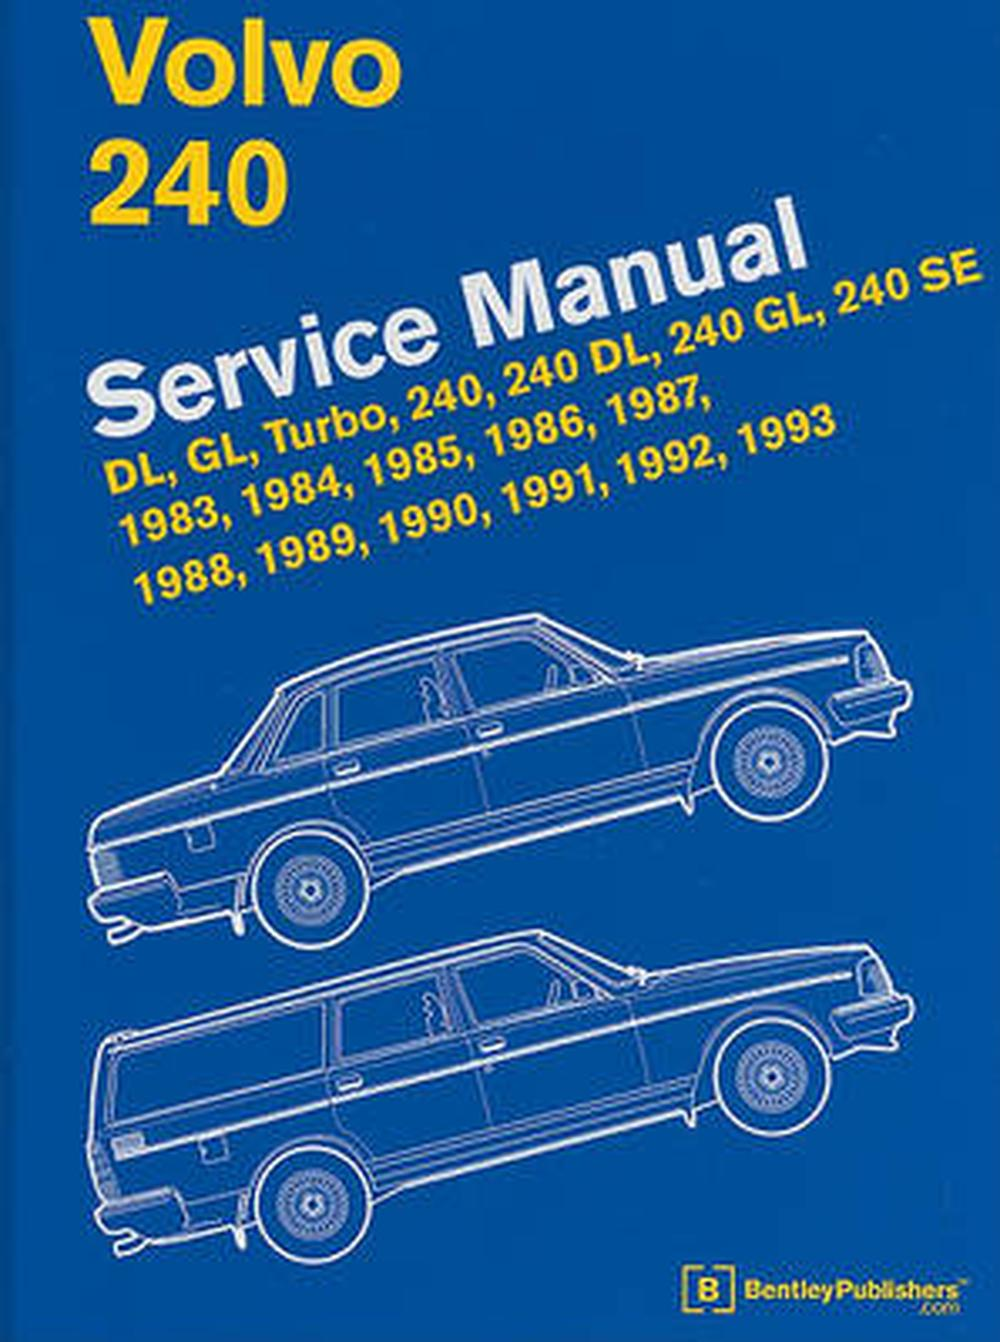 Volvo 240 Service Manual Dl Gl Turbo 240 240 Dl 240 Gl 240 Se 1983 1984 1985 1986 1987 1988 1989 1990 1991 1992 1993